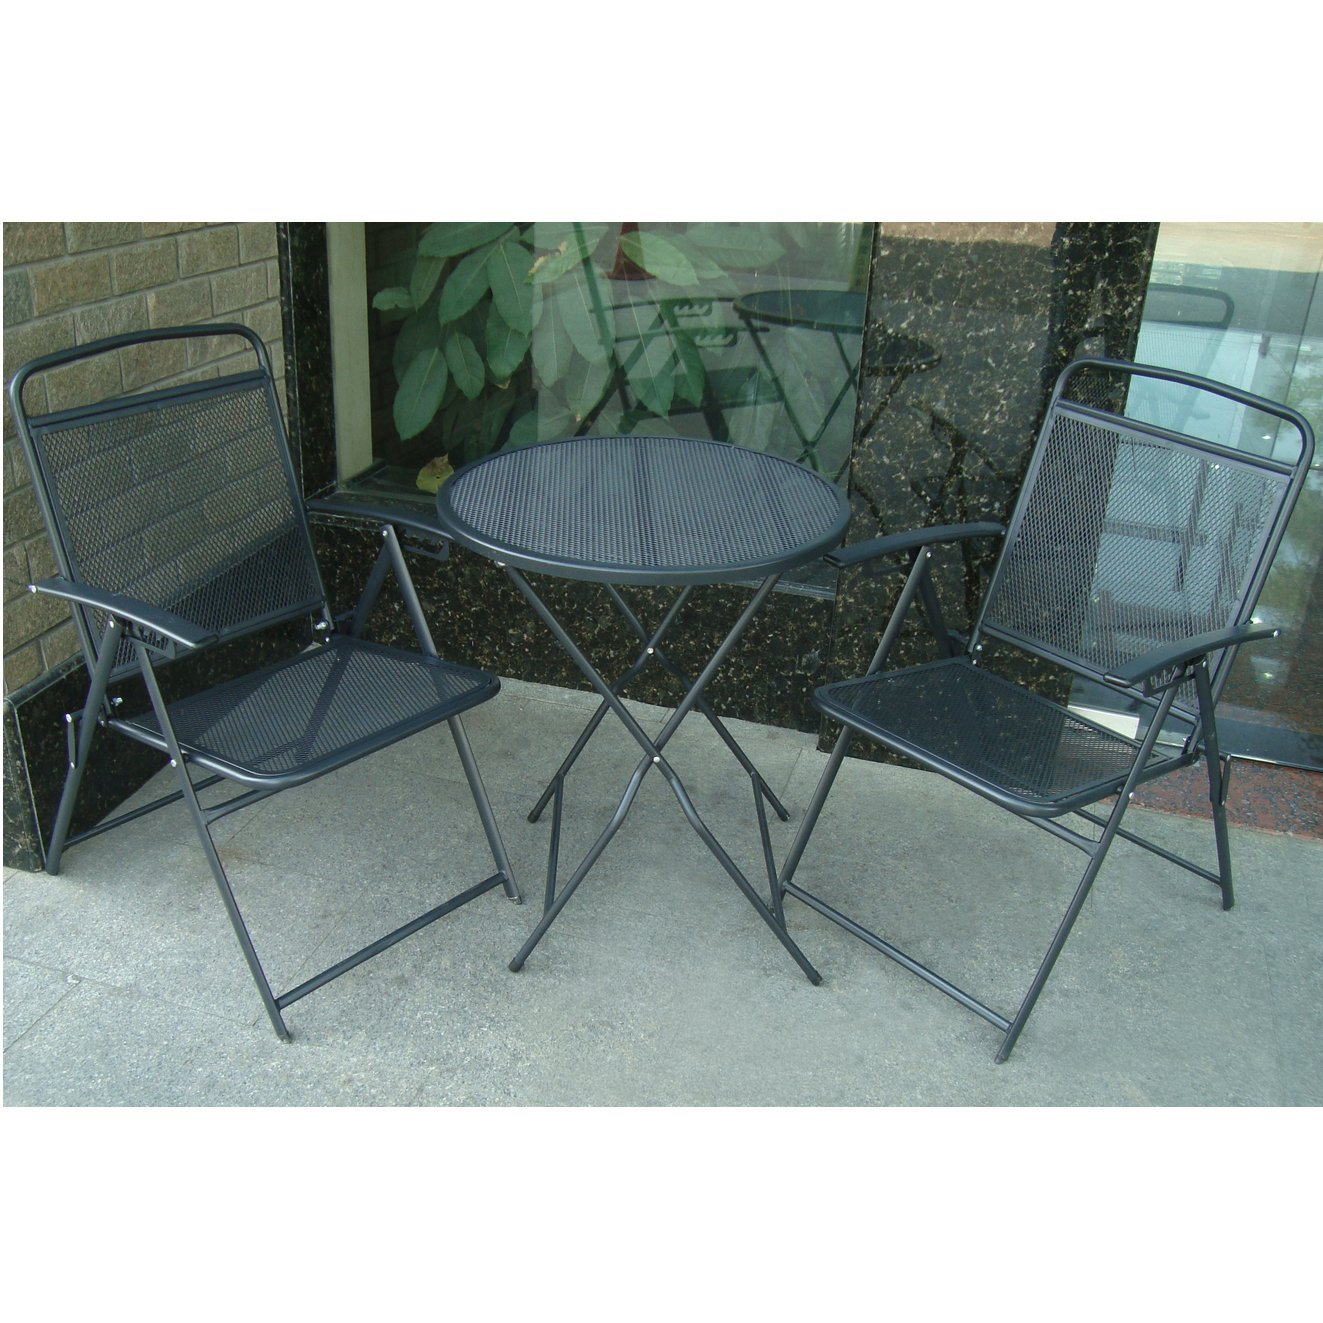 wrought iron patio furniture, bistro set, outdoor furniture